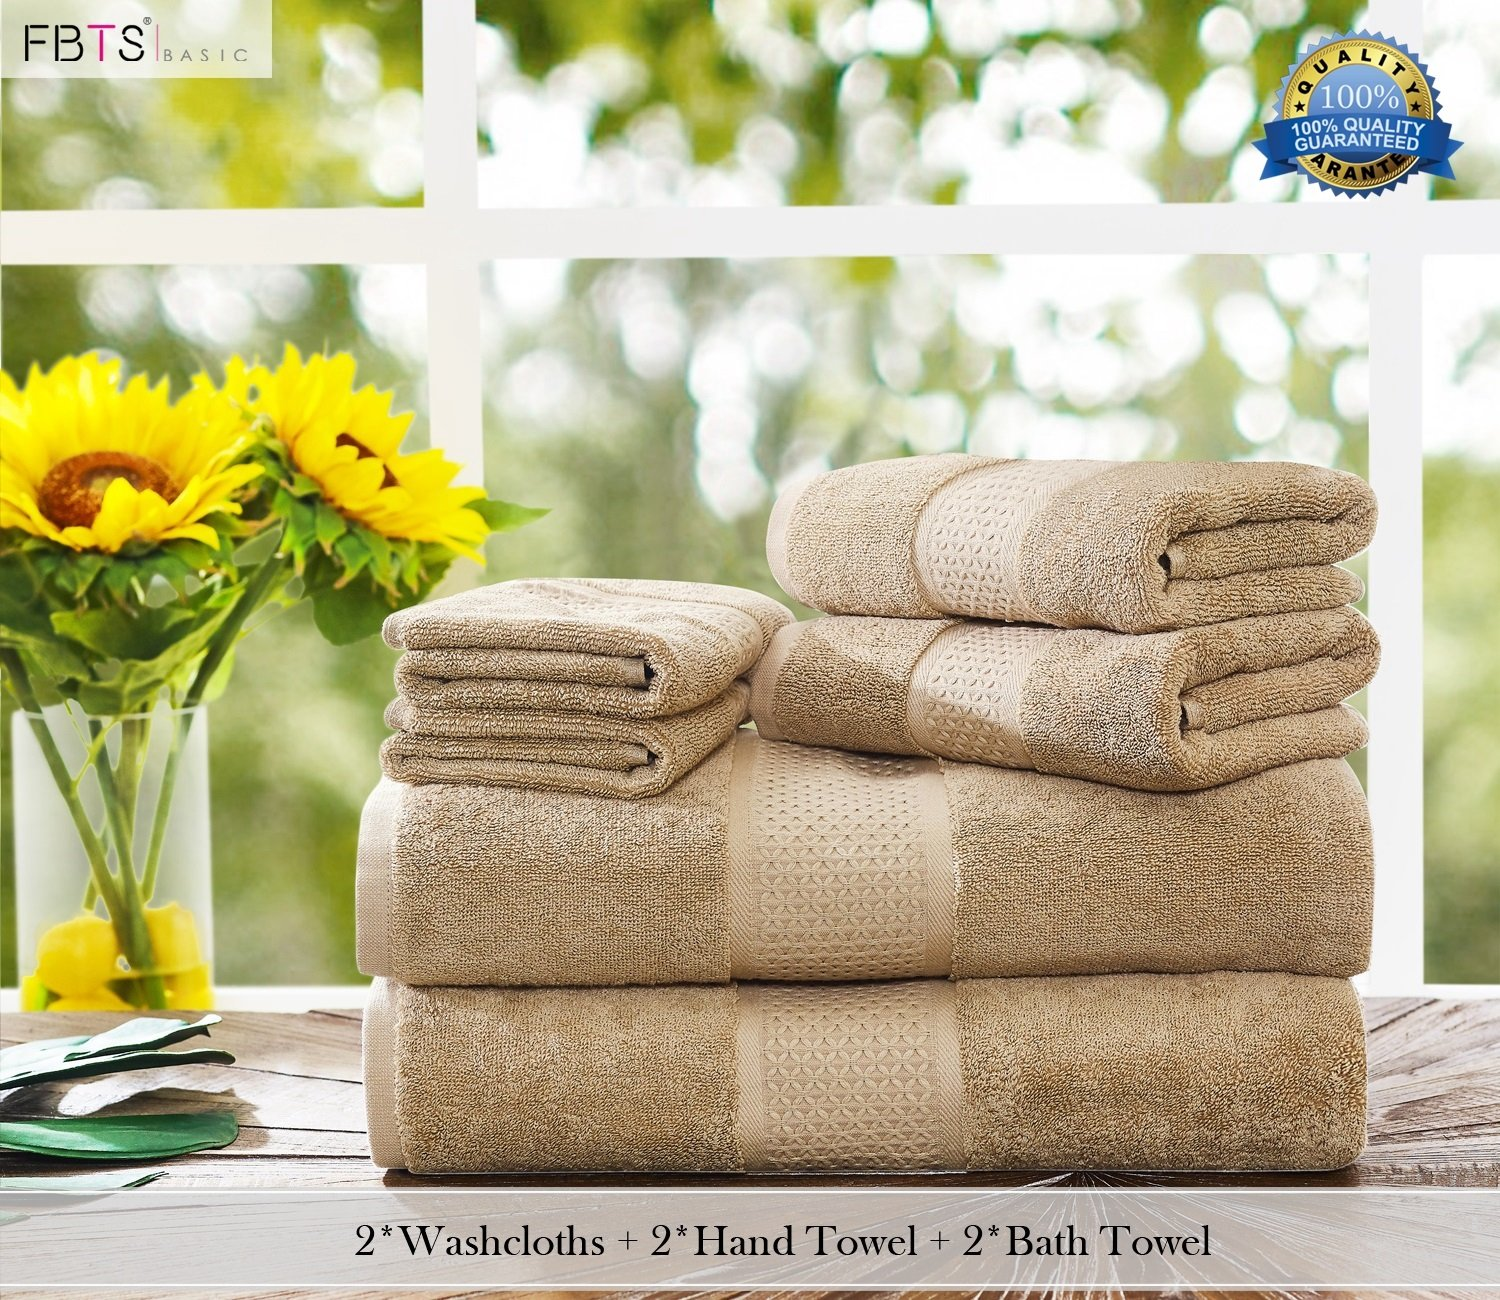 FBTS Basic Bath Towel Pure Cotton Luxury Highly Absorbent Extra Soft Professional Grade Five-Star Hotel Quality 1-Pack, Beige, 31x59 Inches